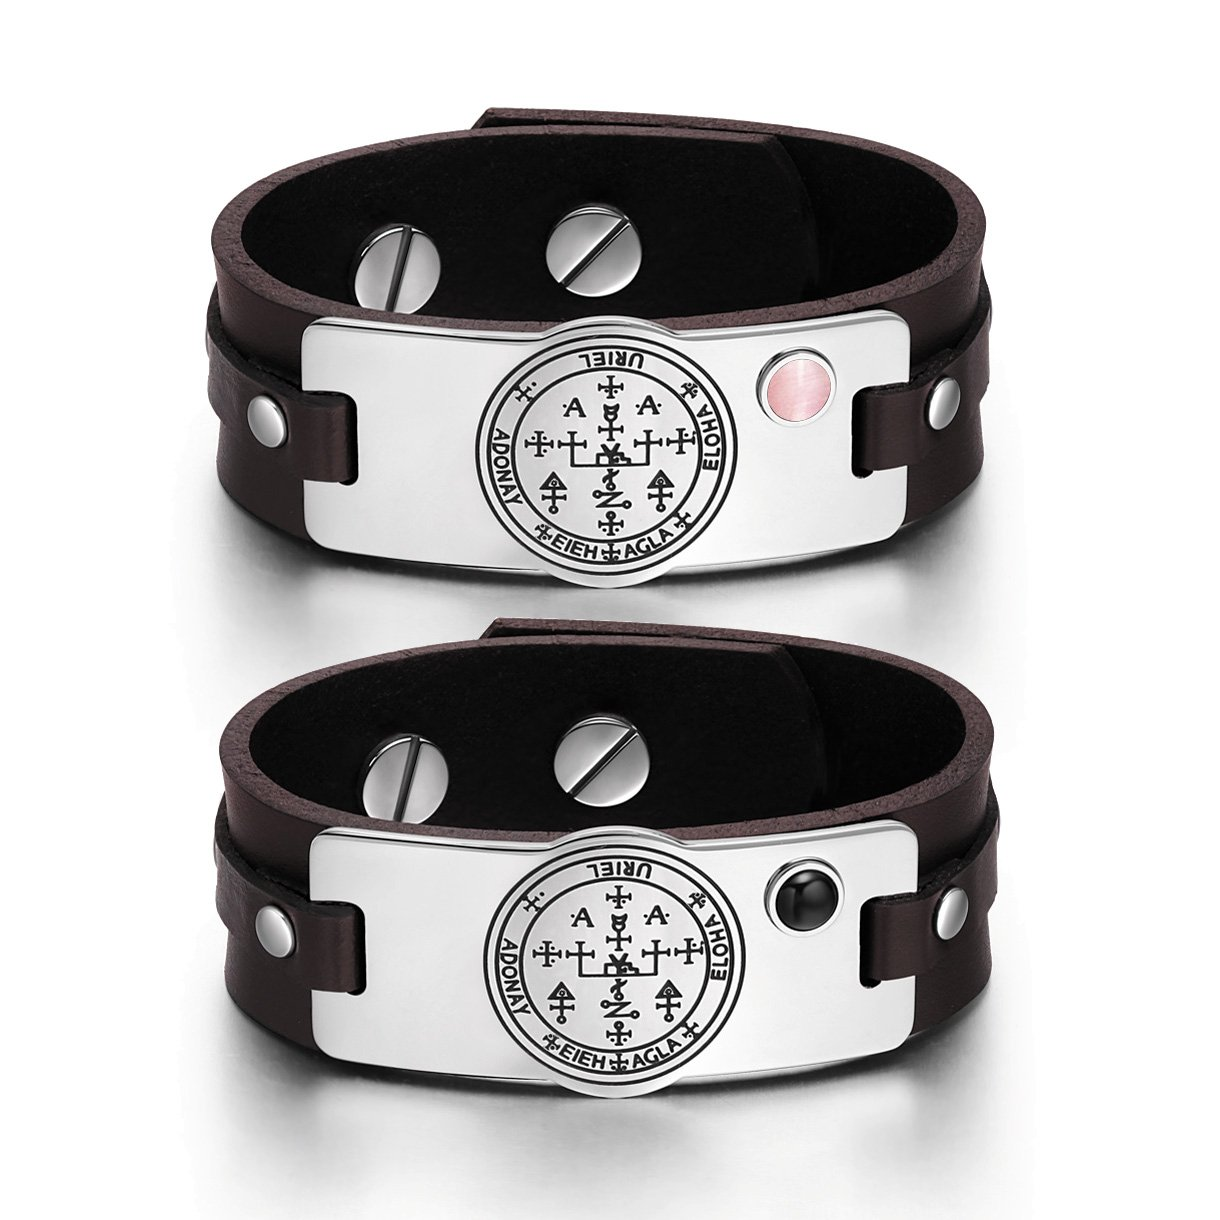 Archangel Uriel Sigil Love Couples Pink Simulated Cats Eye Simulated Onyx Brown Leather Bracelets